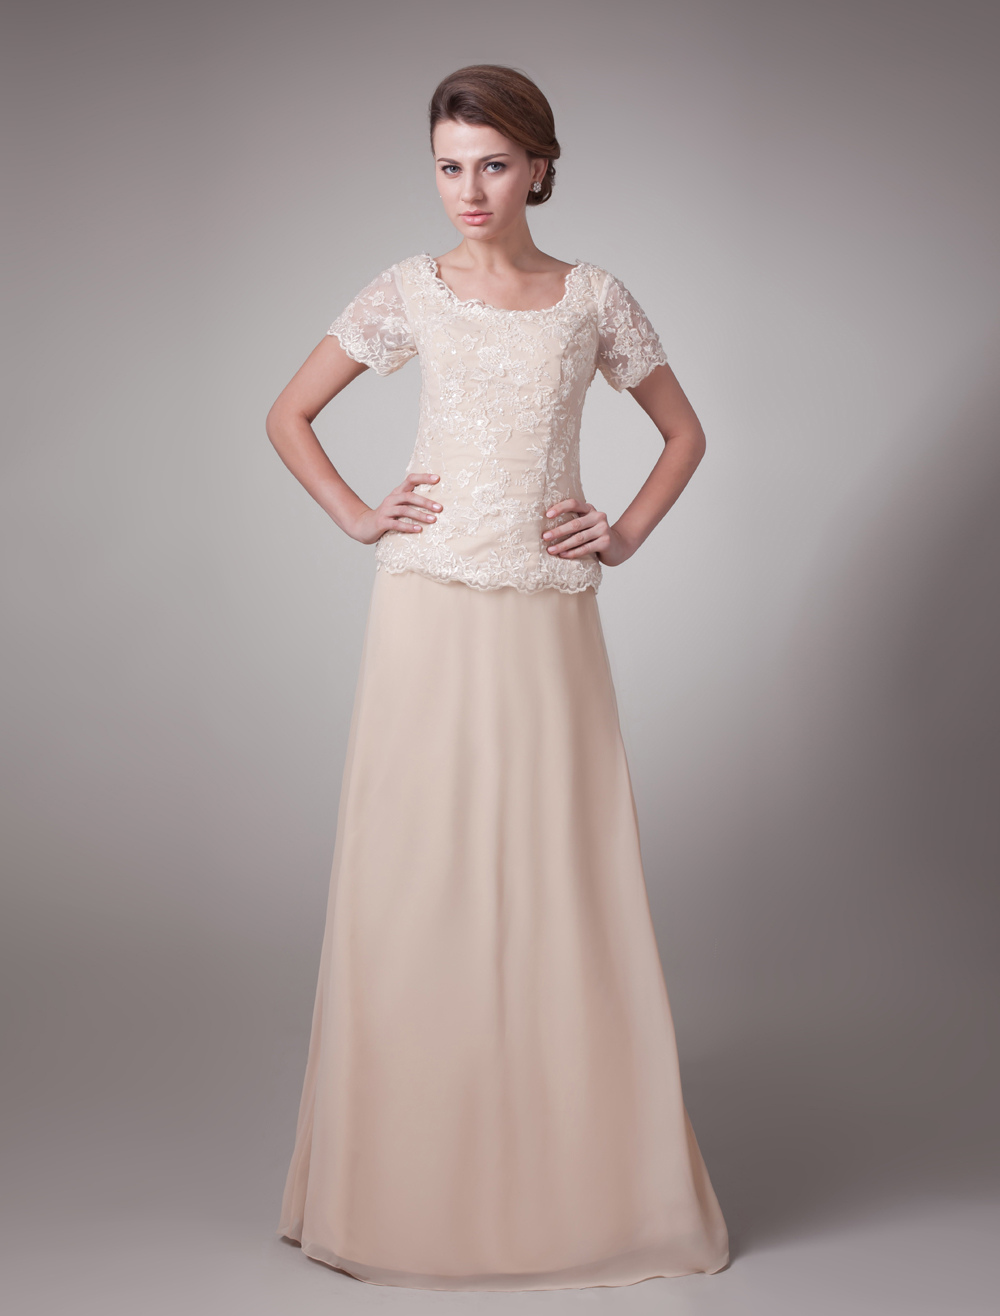 Pink Formal Short Sleeves Lace Satin Mother Of Bride And Groom Dress (Wedding) photo